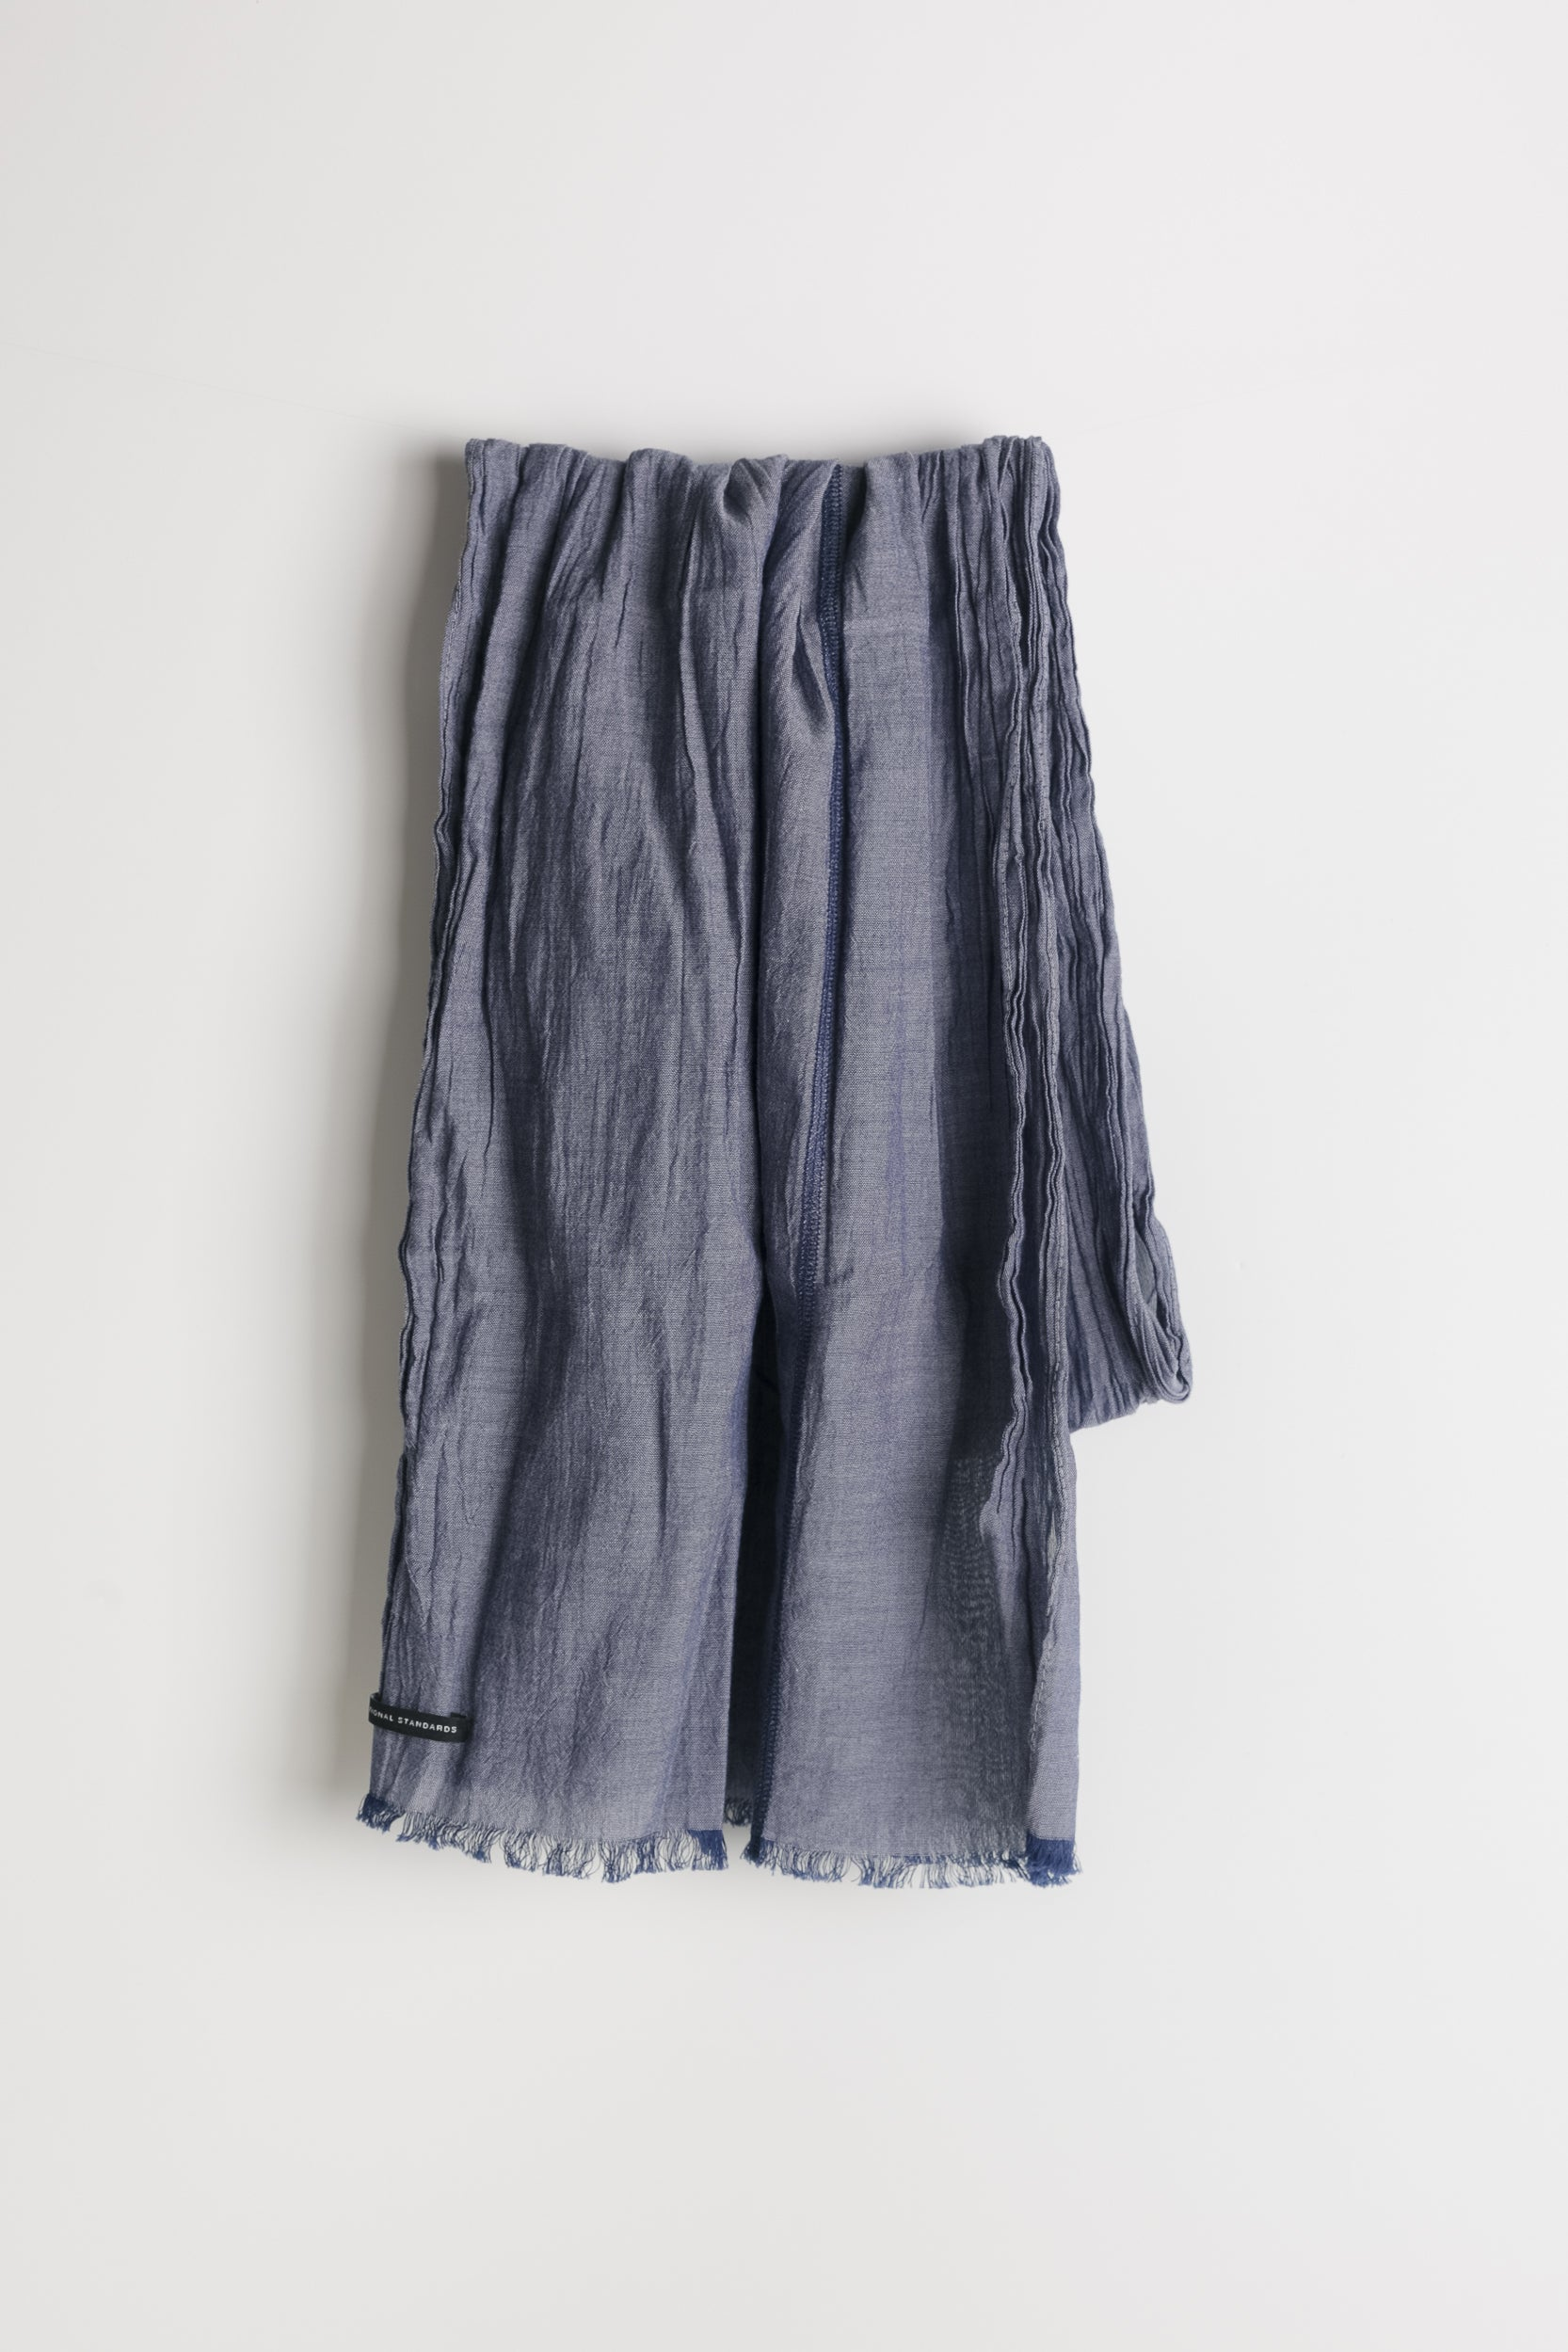 Chambray Scarf in Blue 001